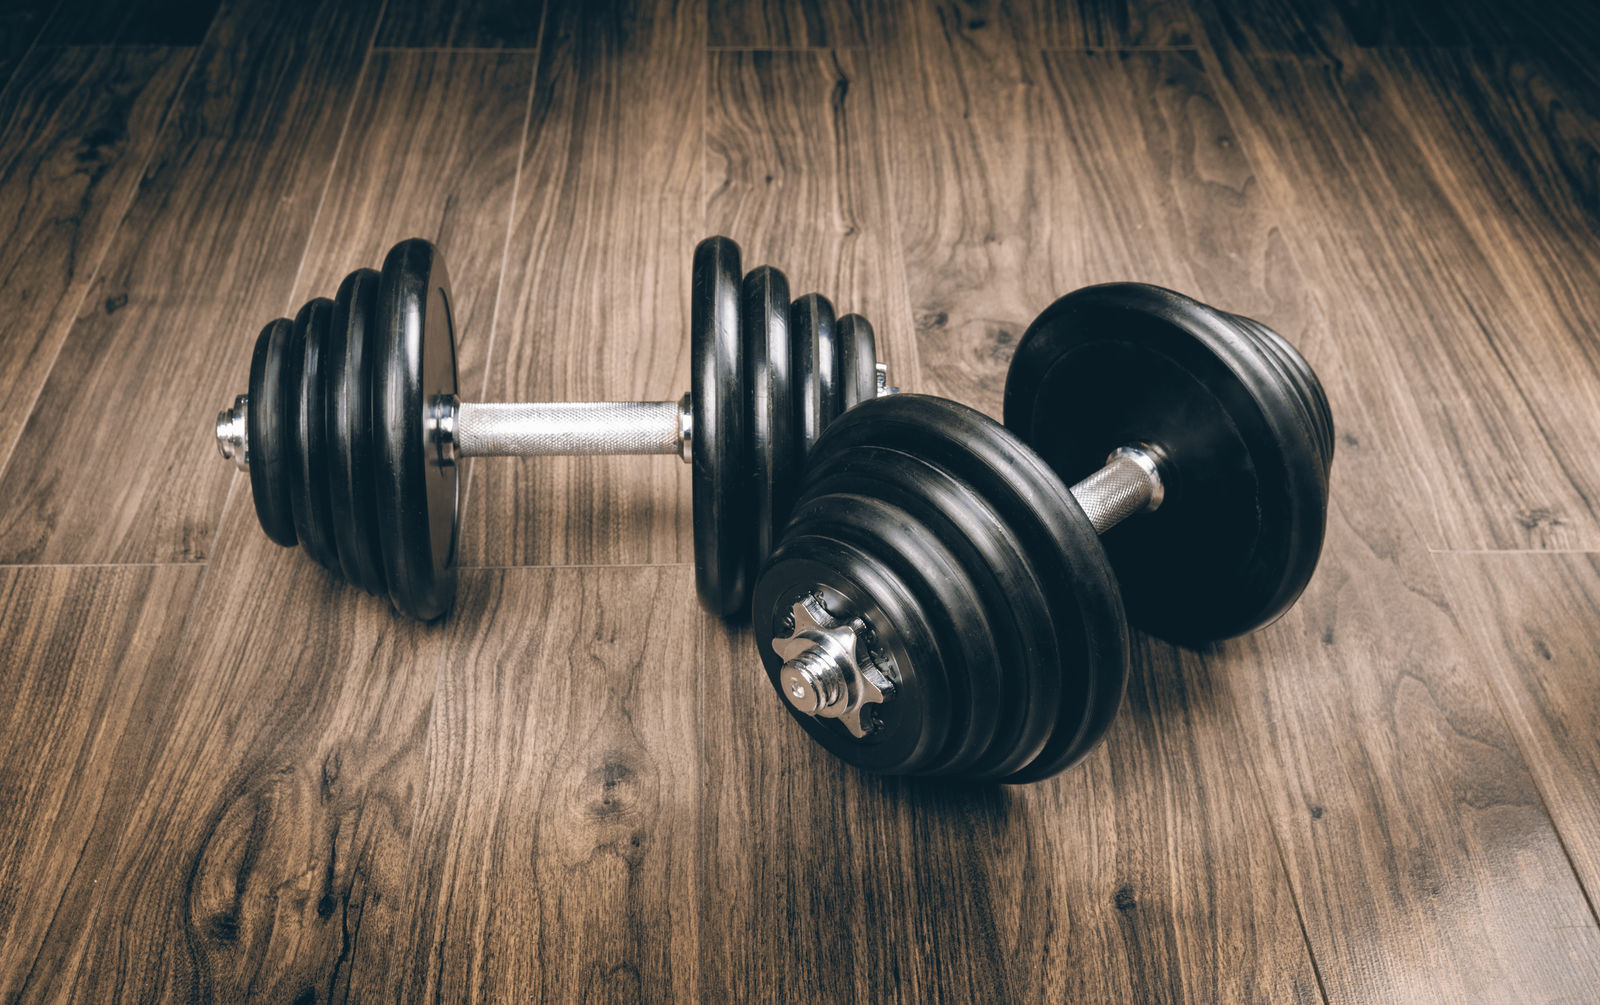 What are weights